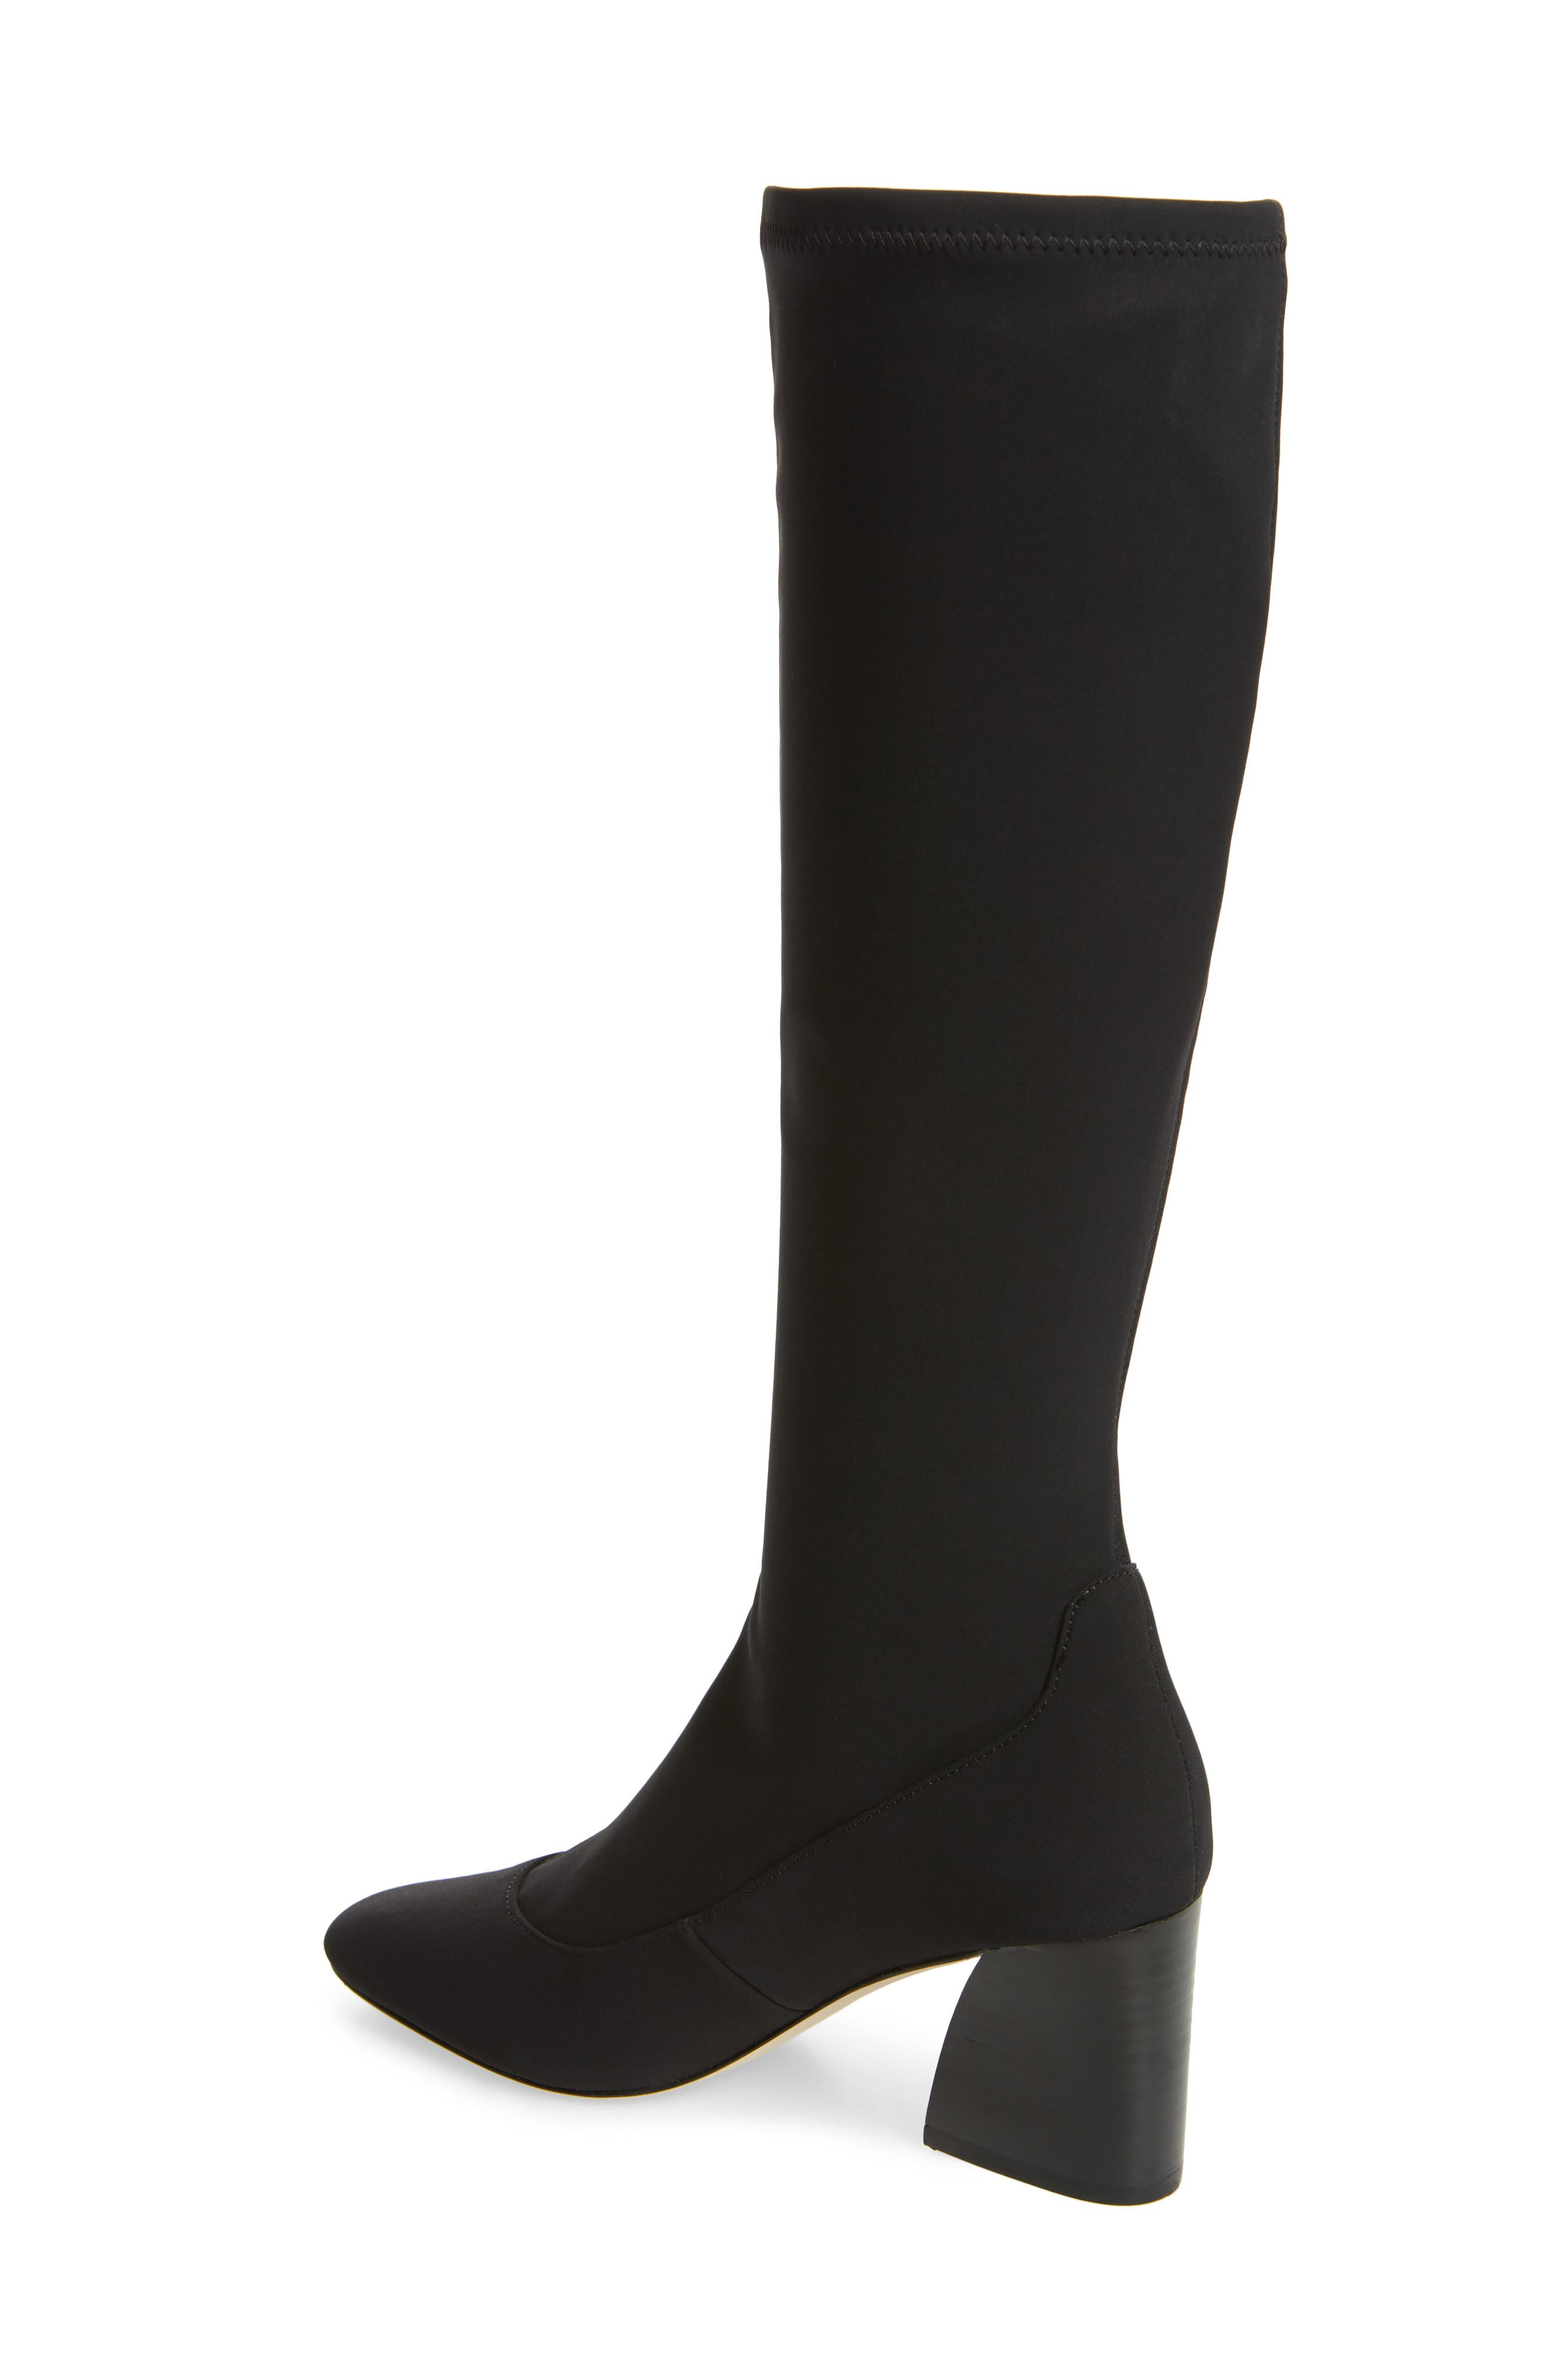 DONALD PLINER, Gerti Knee High Stretch Boot, Alternate thumbnail 2, color, 001